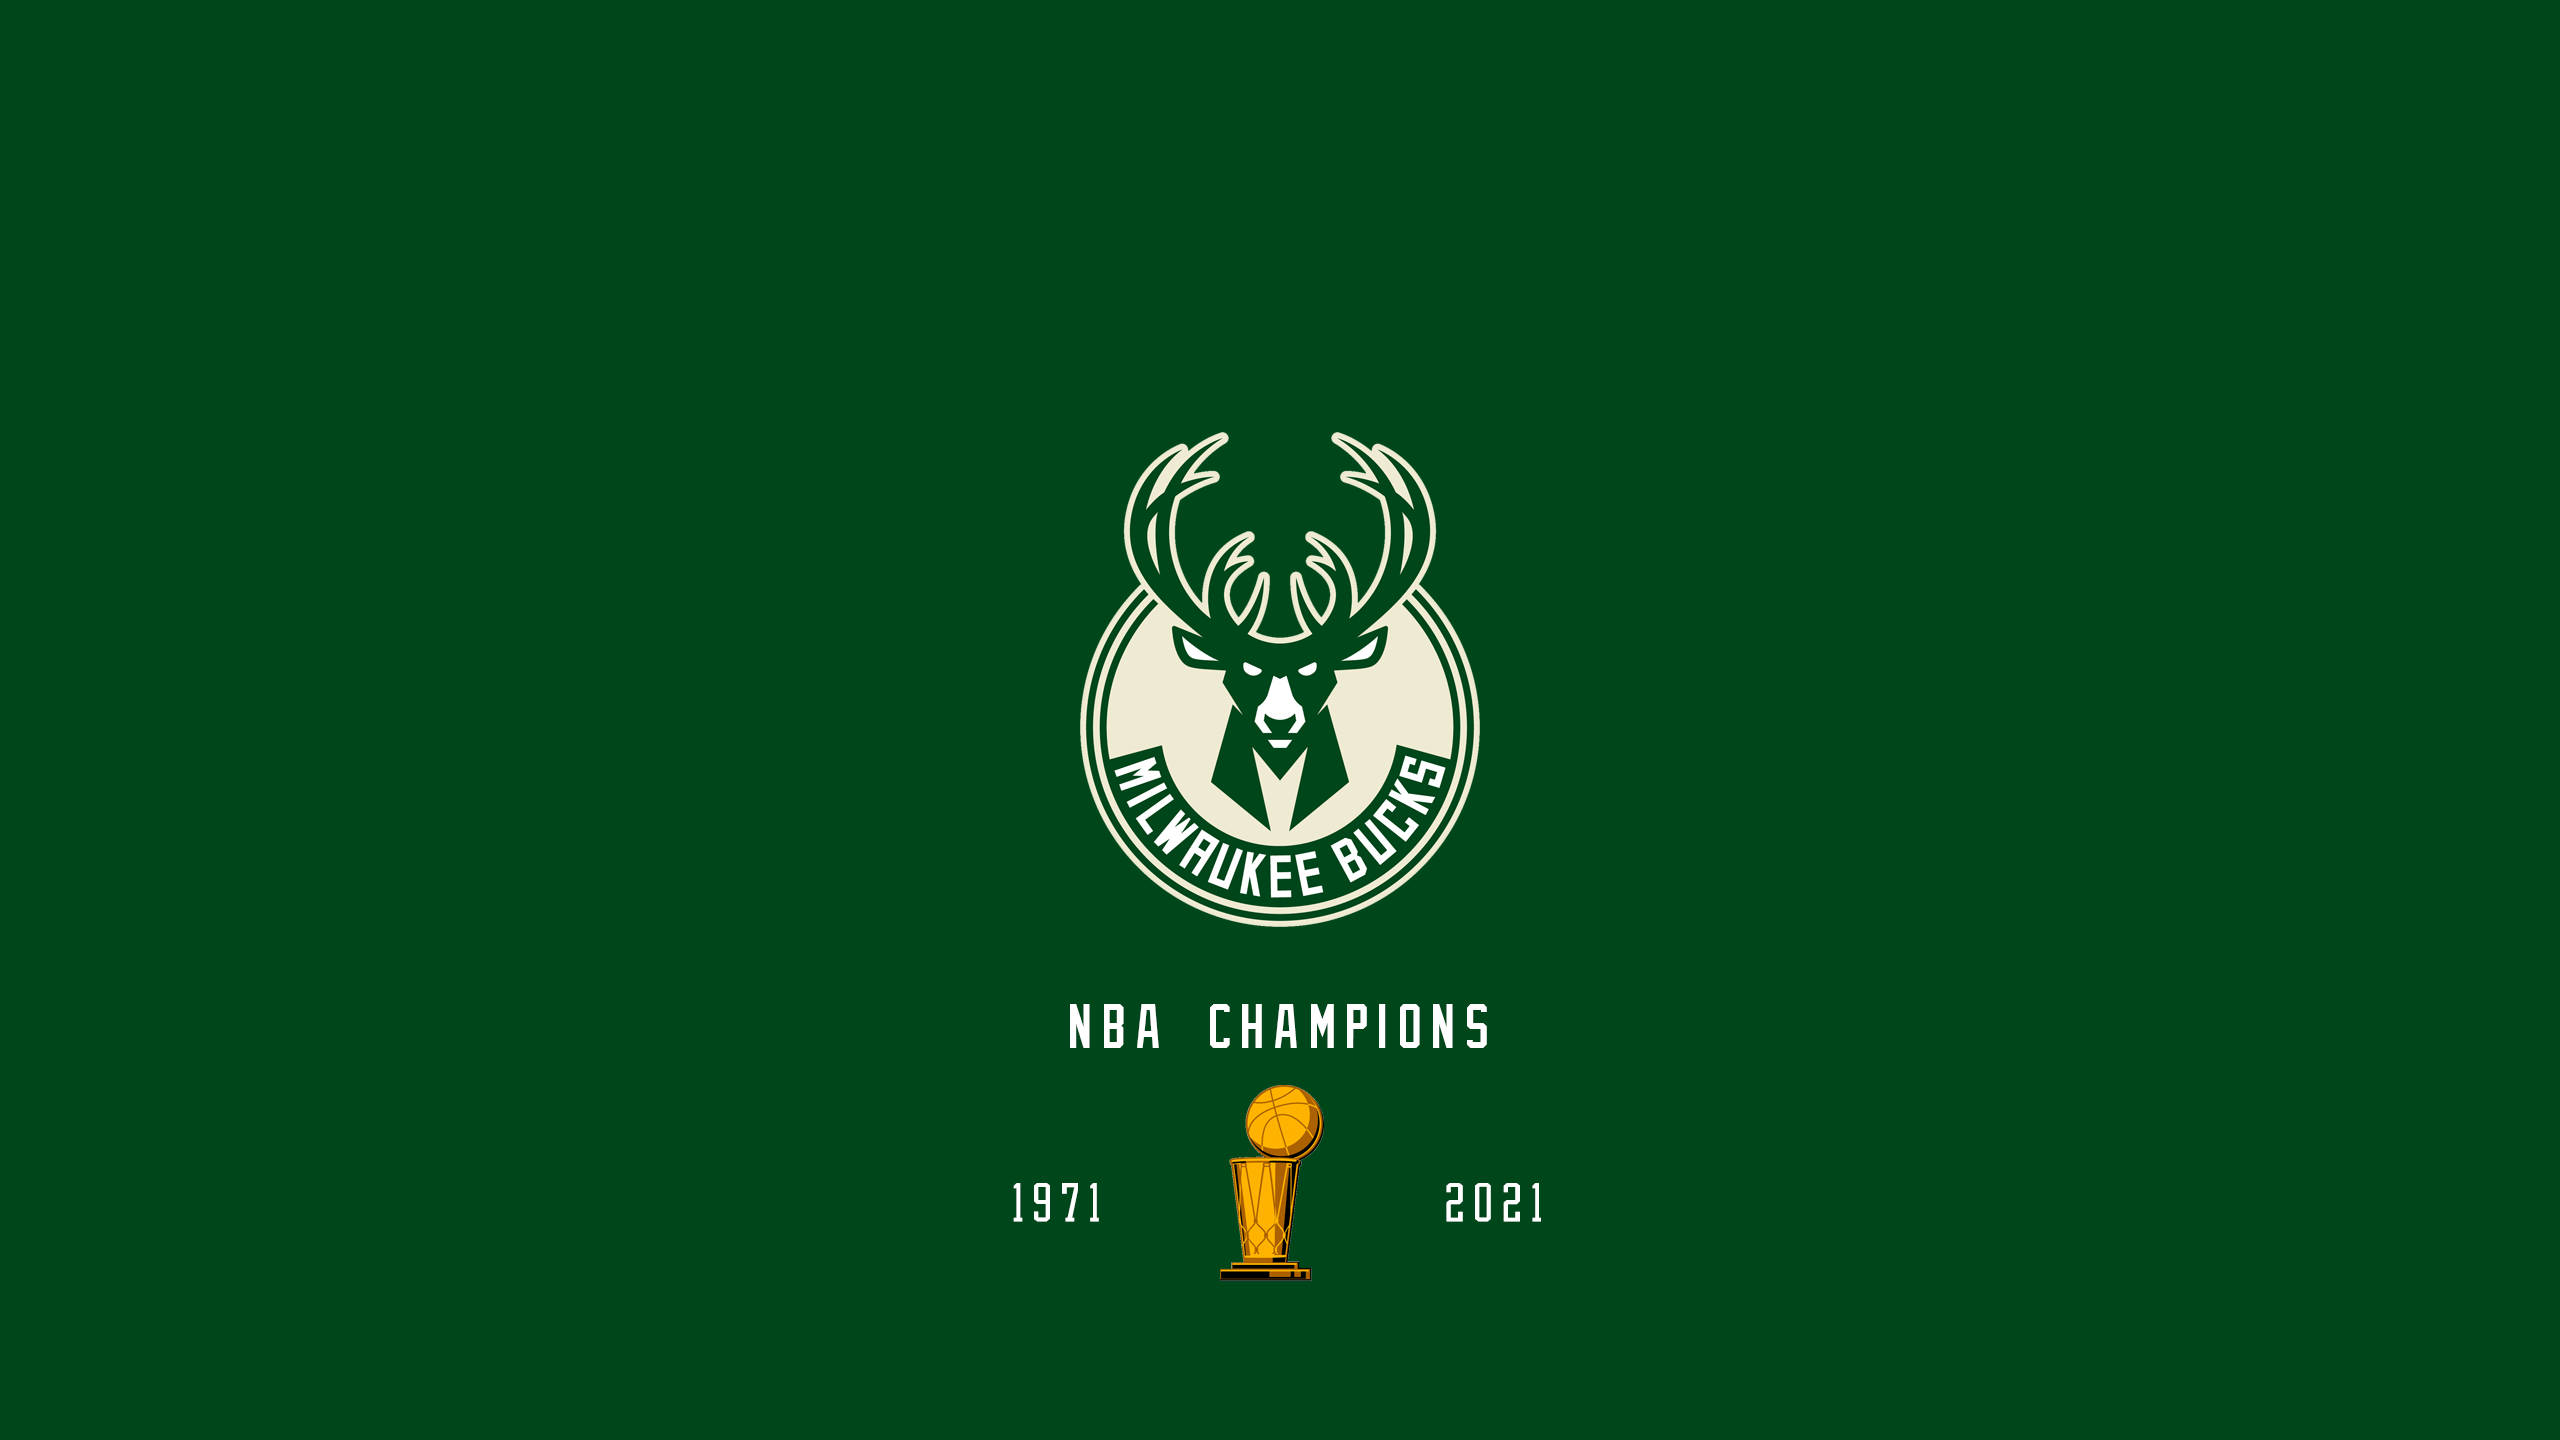 Milwaukee Bucks - NBA Champs